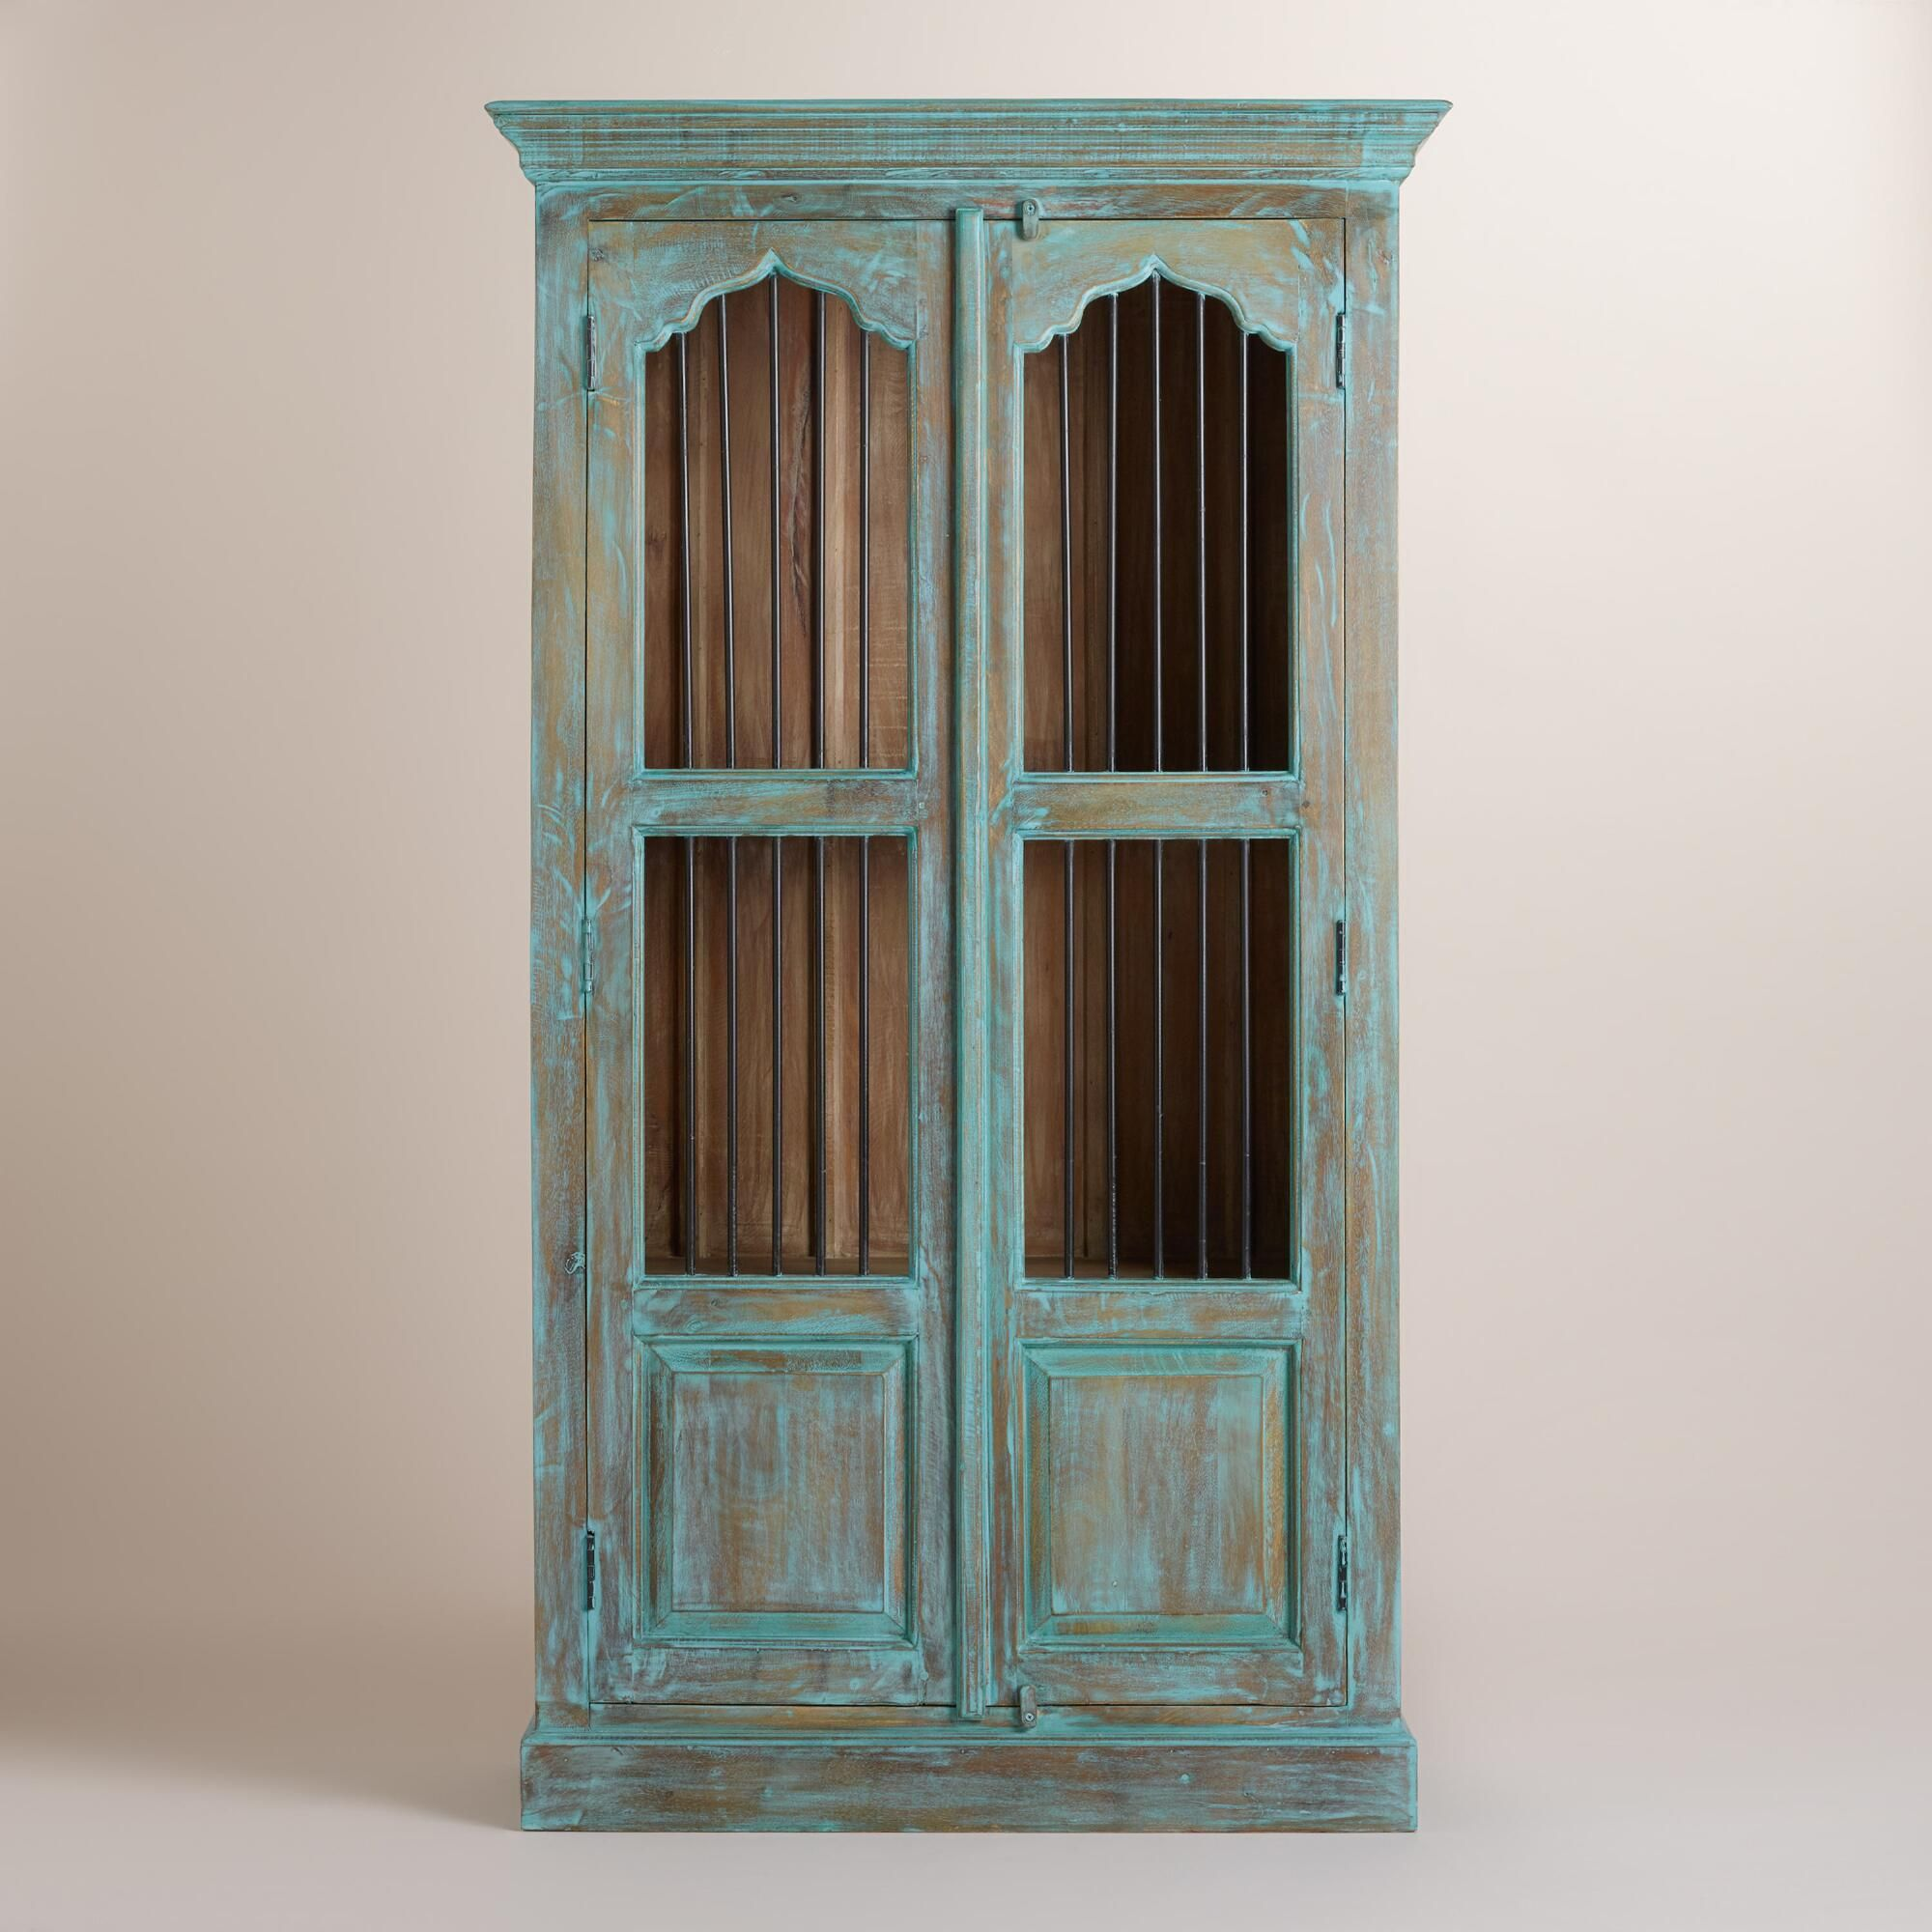 Kitchen cabinet doors in bangalore first time in india architect - Handcrafted By Artisans In Rajasthan Our Distressed Teal Cabinet Brings Traditional Indian Design To Contemporary